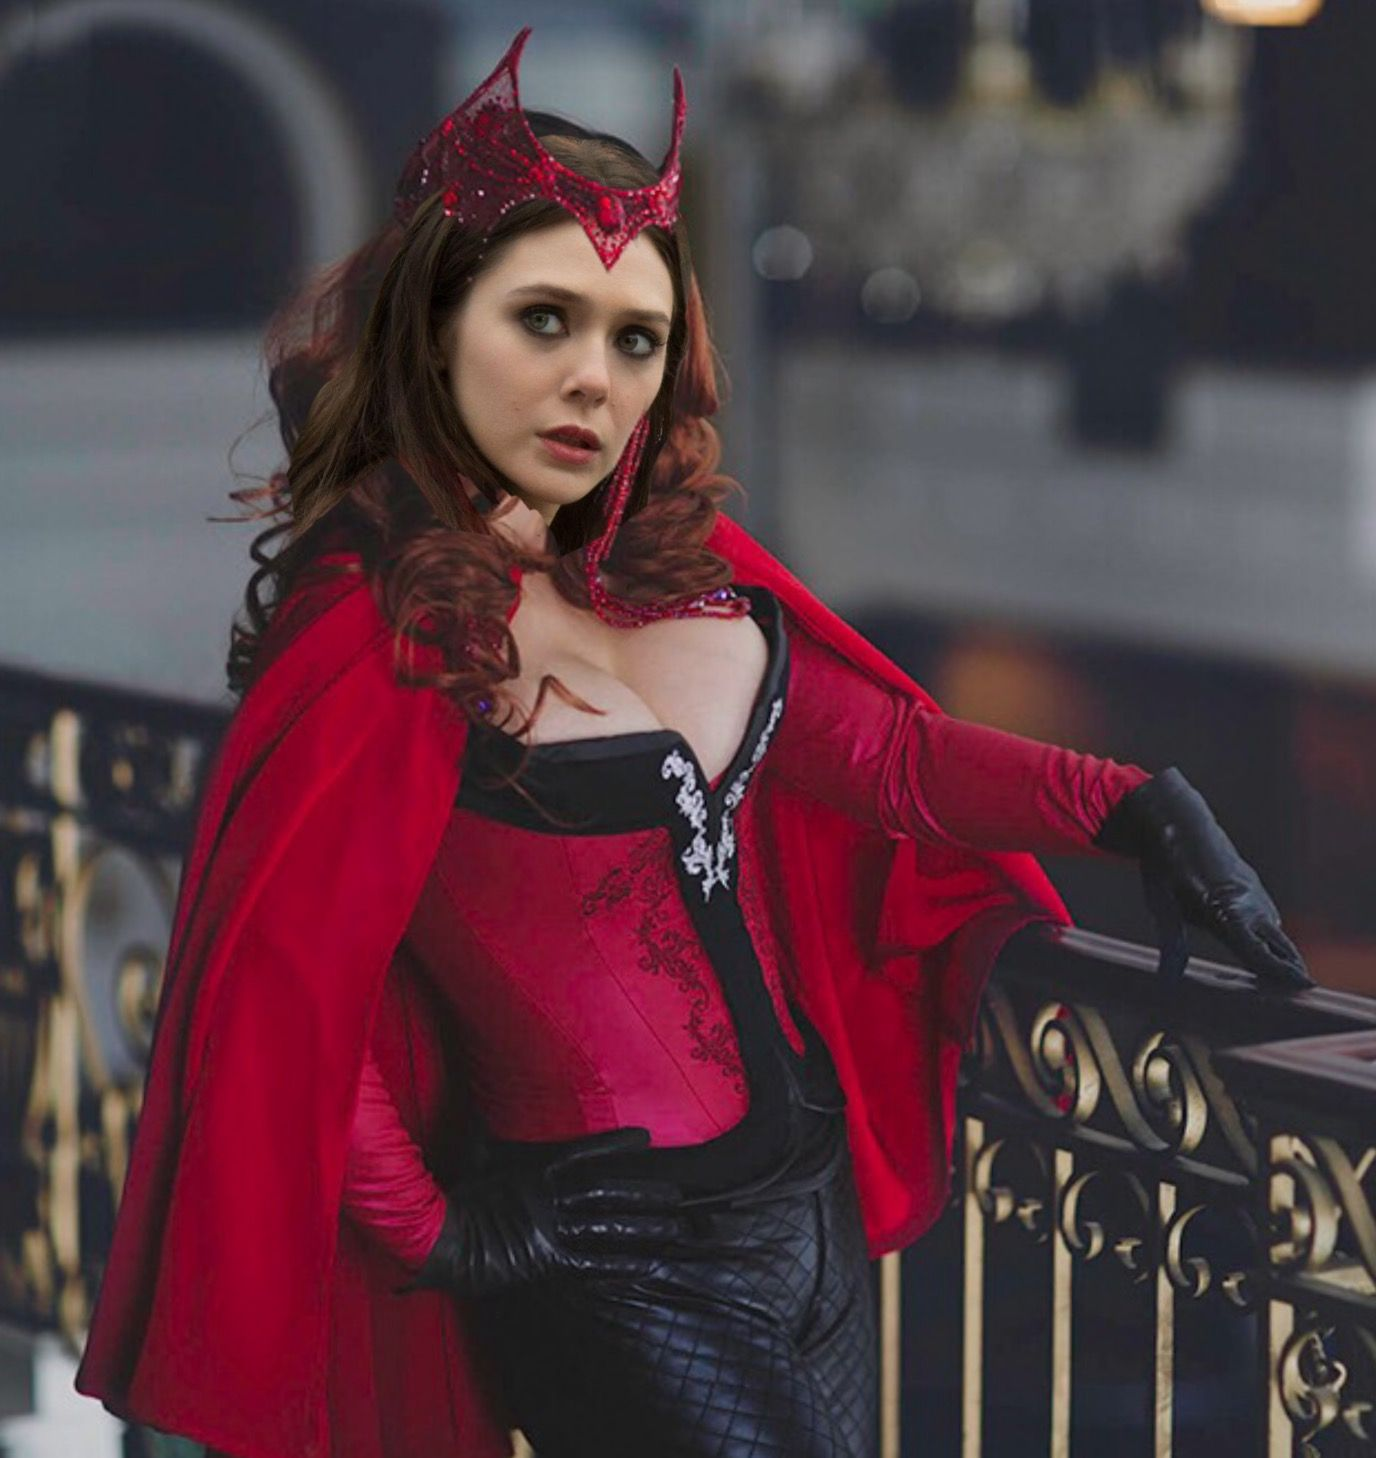 Scarlet Witch With Headpiece And Comic Outfit Scarlet Witch Costume Super Hero Costumes Cosplay